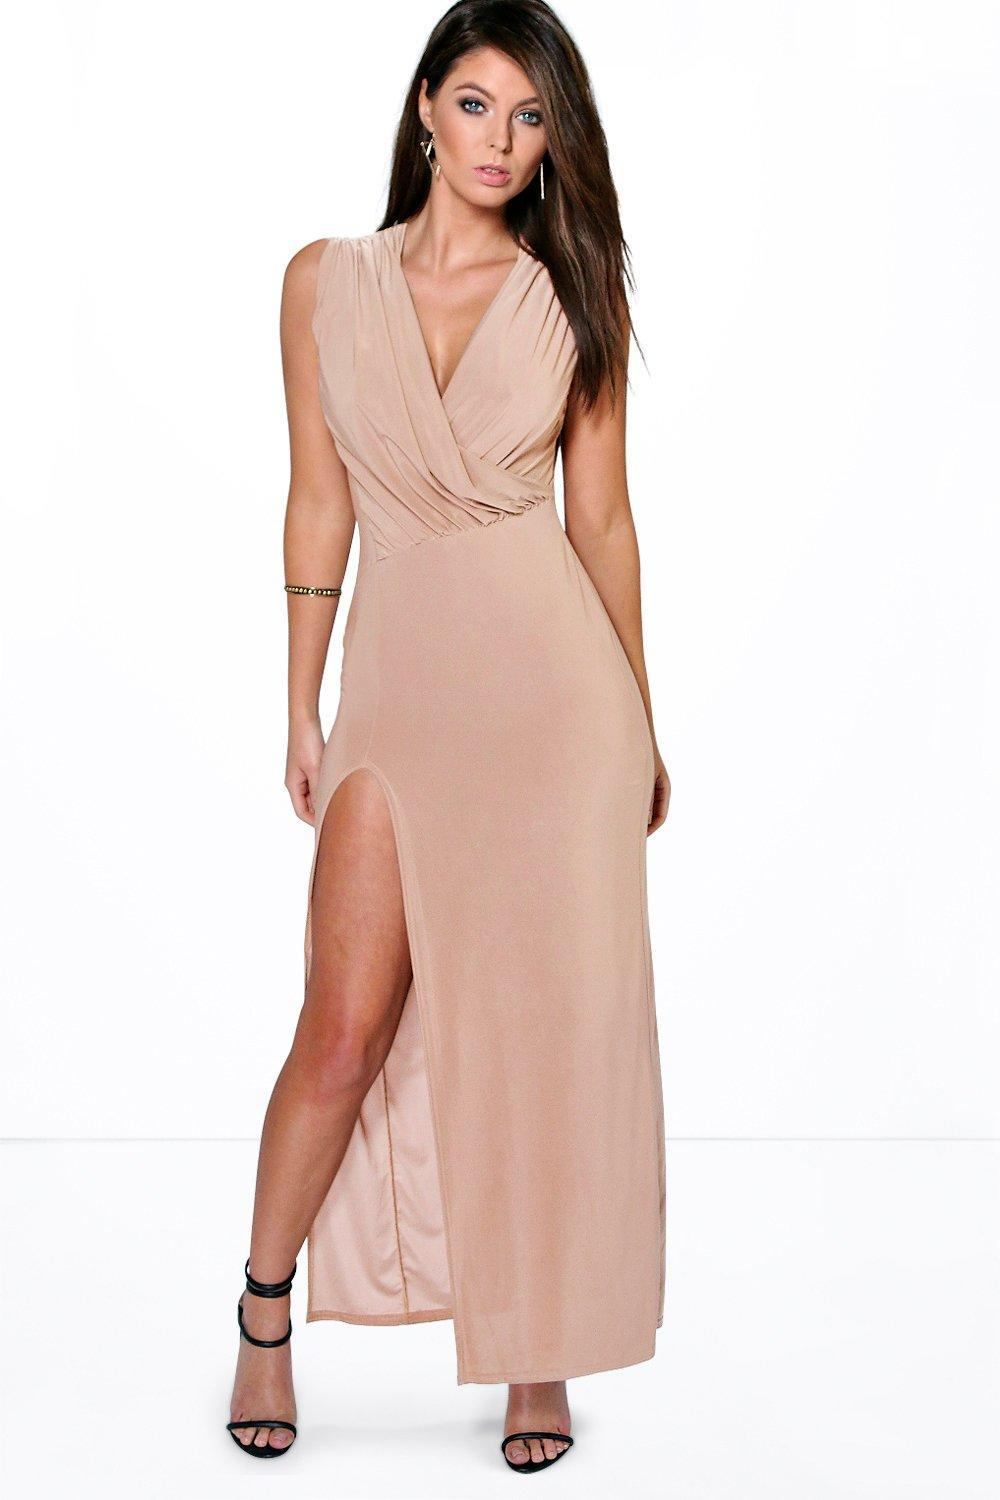 Draped Plunge Thigh Slit Maxi Dress Black - neckline: low v-neck; pattern: plain; sleeve style: sleeveless; style: maxi dress; length: ankle length; waist detail: fitted waist; bust detail: ruching/gathering/draping/layers/pintuck pleats at bust; predominant colour: nude; fit: body skimming; fibres: polyester/polyamide - stretch; occasions: occasion; hip detail: slits at hip; sleeve length: sleeveless; pattern type: fabric; texture group: jersey - stretchy/drapey; season: s/s 2016